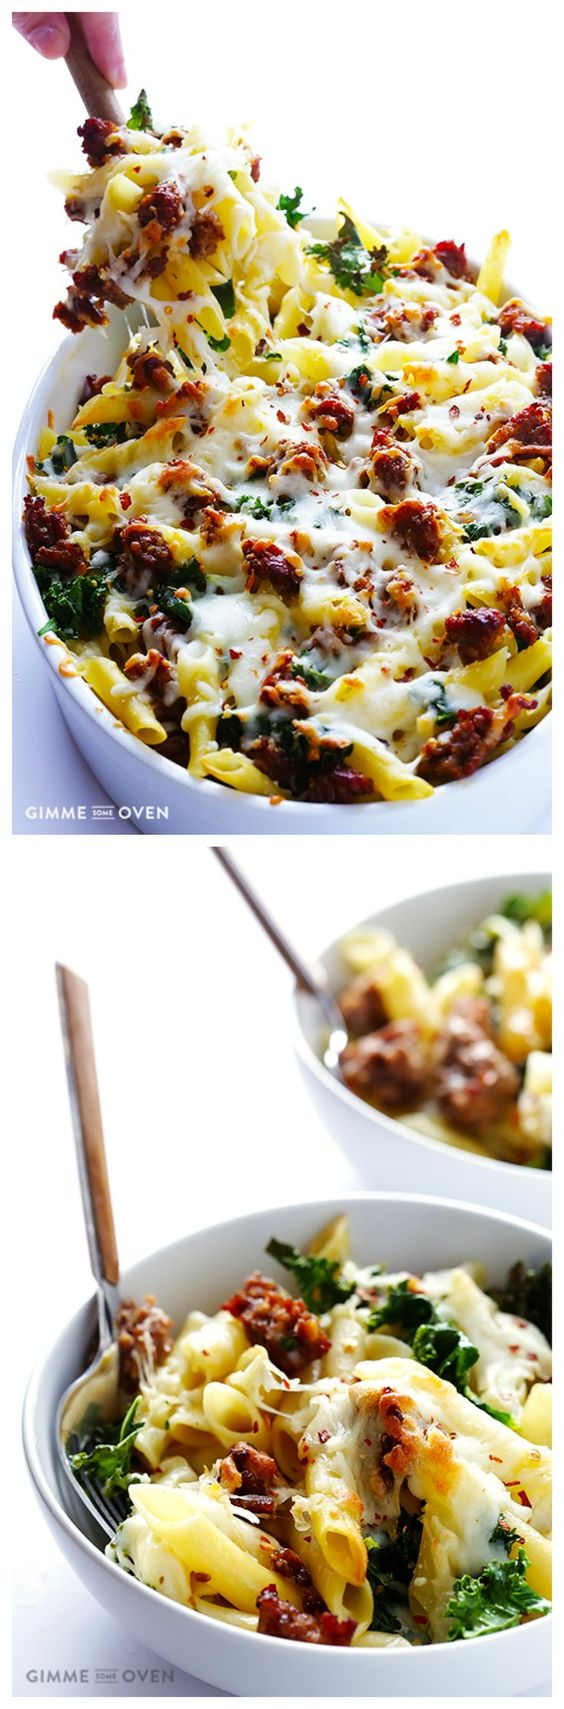 Sausage and Kale Baked Ziti | Baked Ziti, Italian Sausages and Kale ...